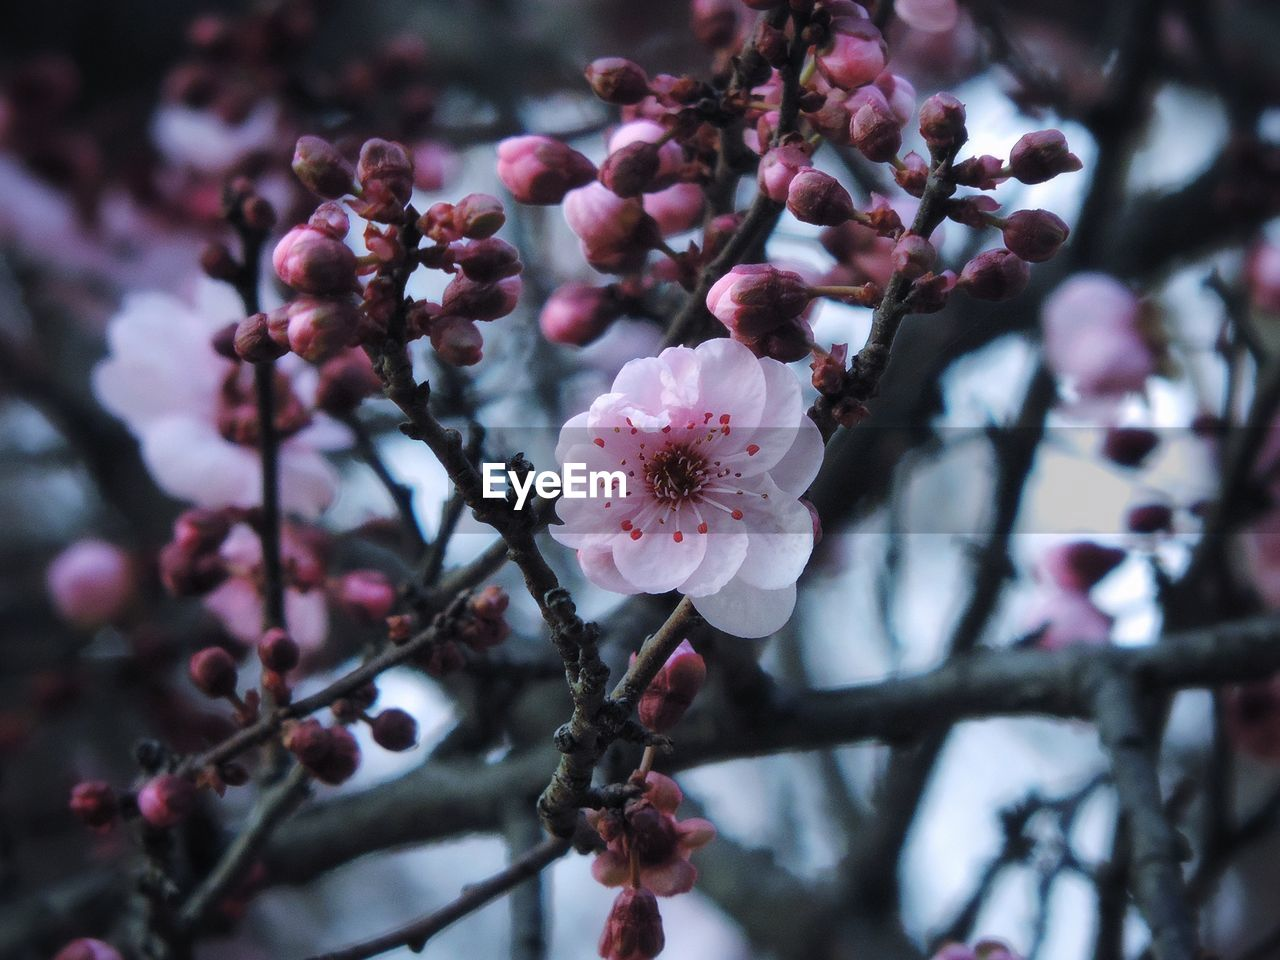 flower, fragility, growth, tree, beauty in nature, springtime, blossom, branch, freshness, botany, nature, twig, petal, apple blossom, close-up, pink color, flower head, plum blossom, focus on foreground, day, no people, selective focus, outdoors, pollen, stamen, blooming